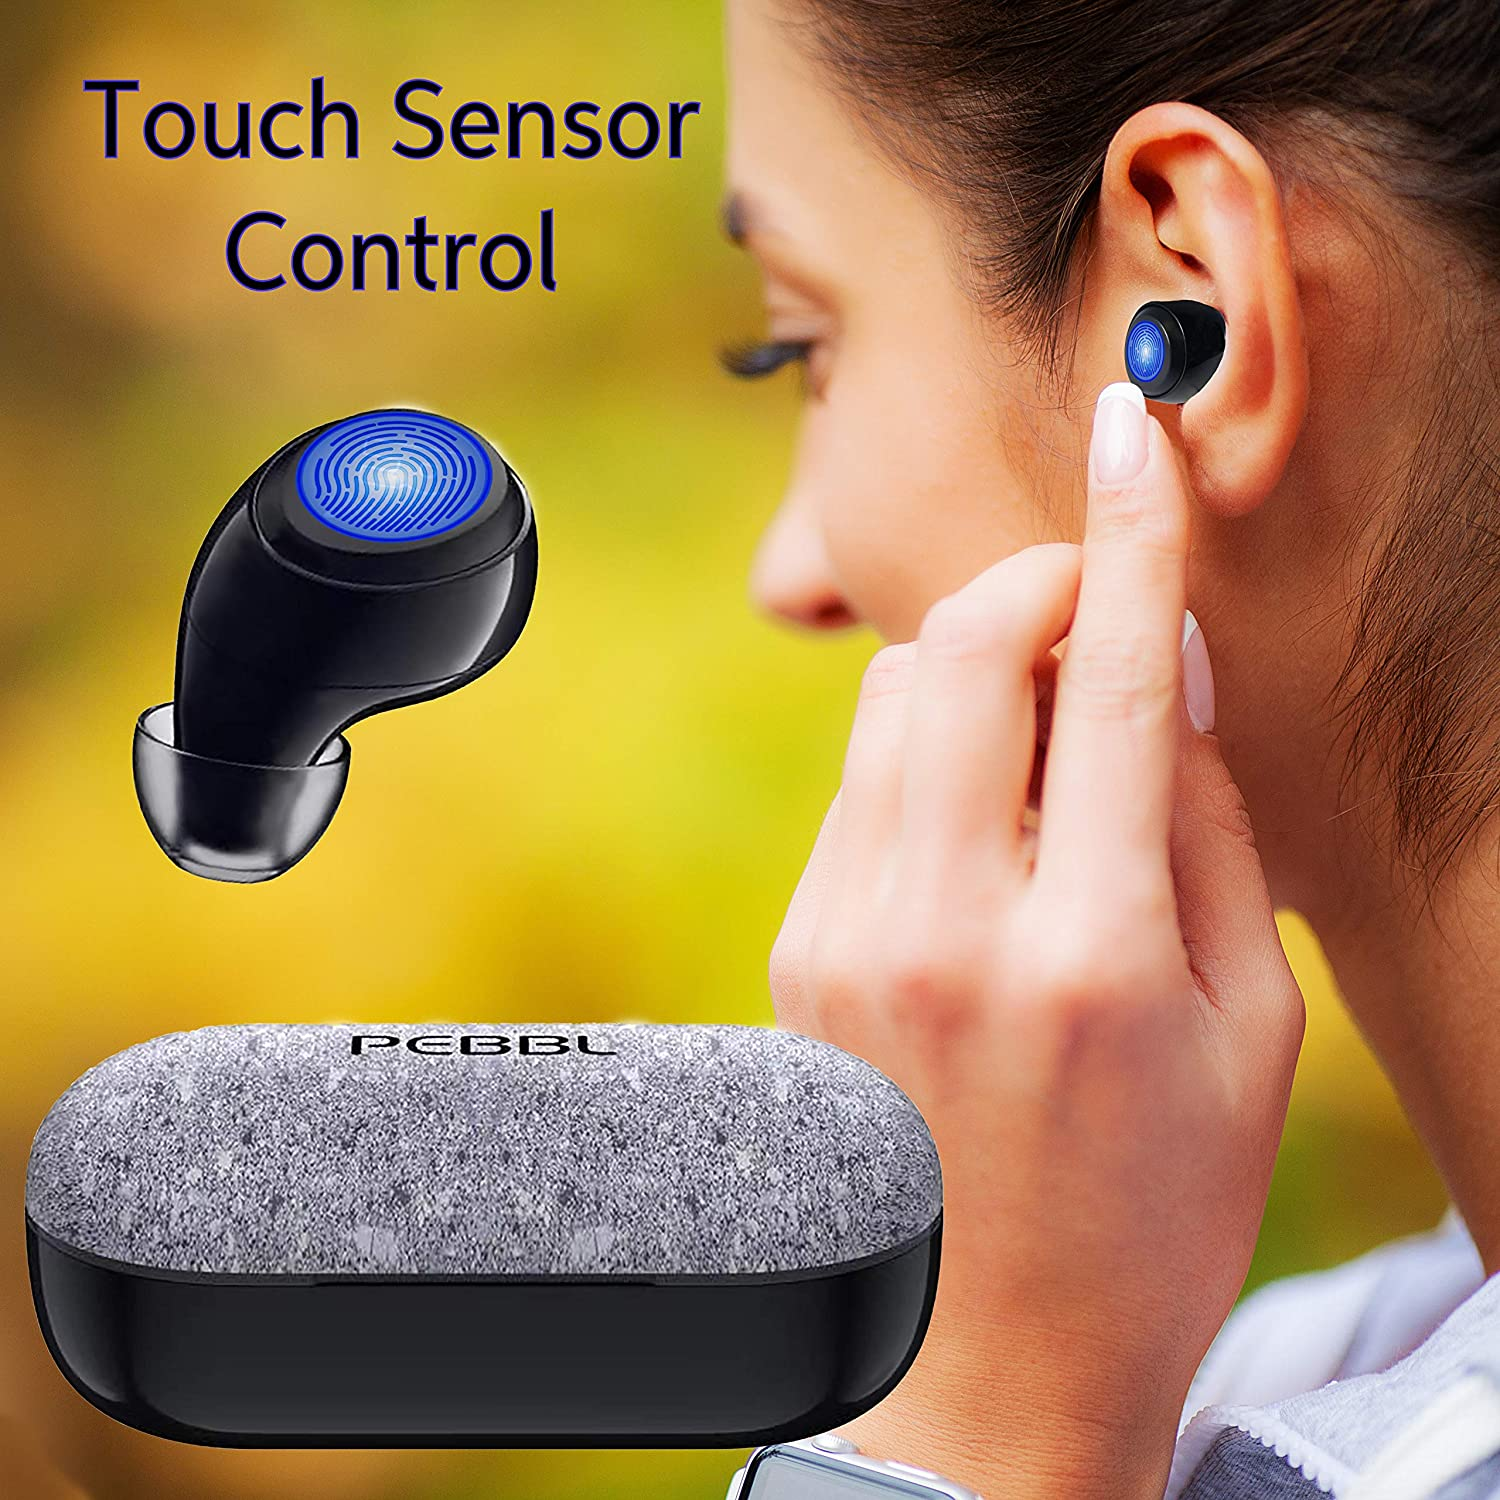 PEBBL True Wireless Earbuds Bluetooth 5.0 Noise Cancelling Earphones with Touch Sensor Controls